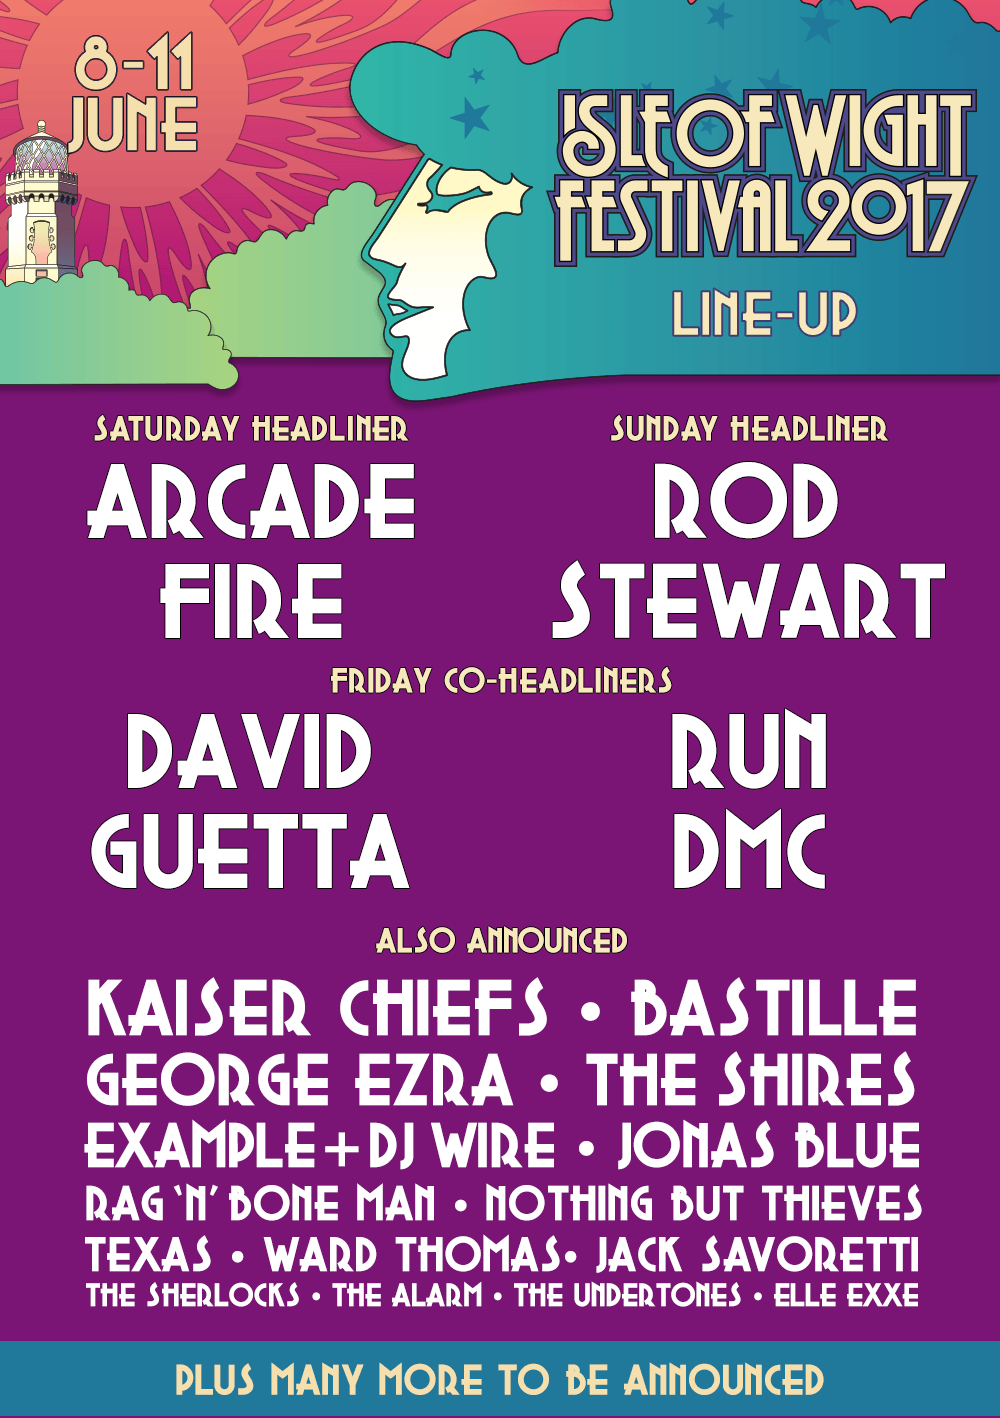 Isle of Wight Festival Line up